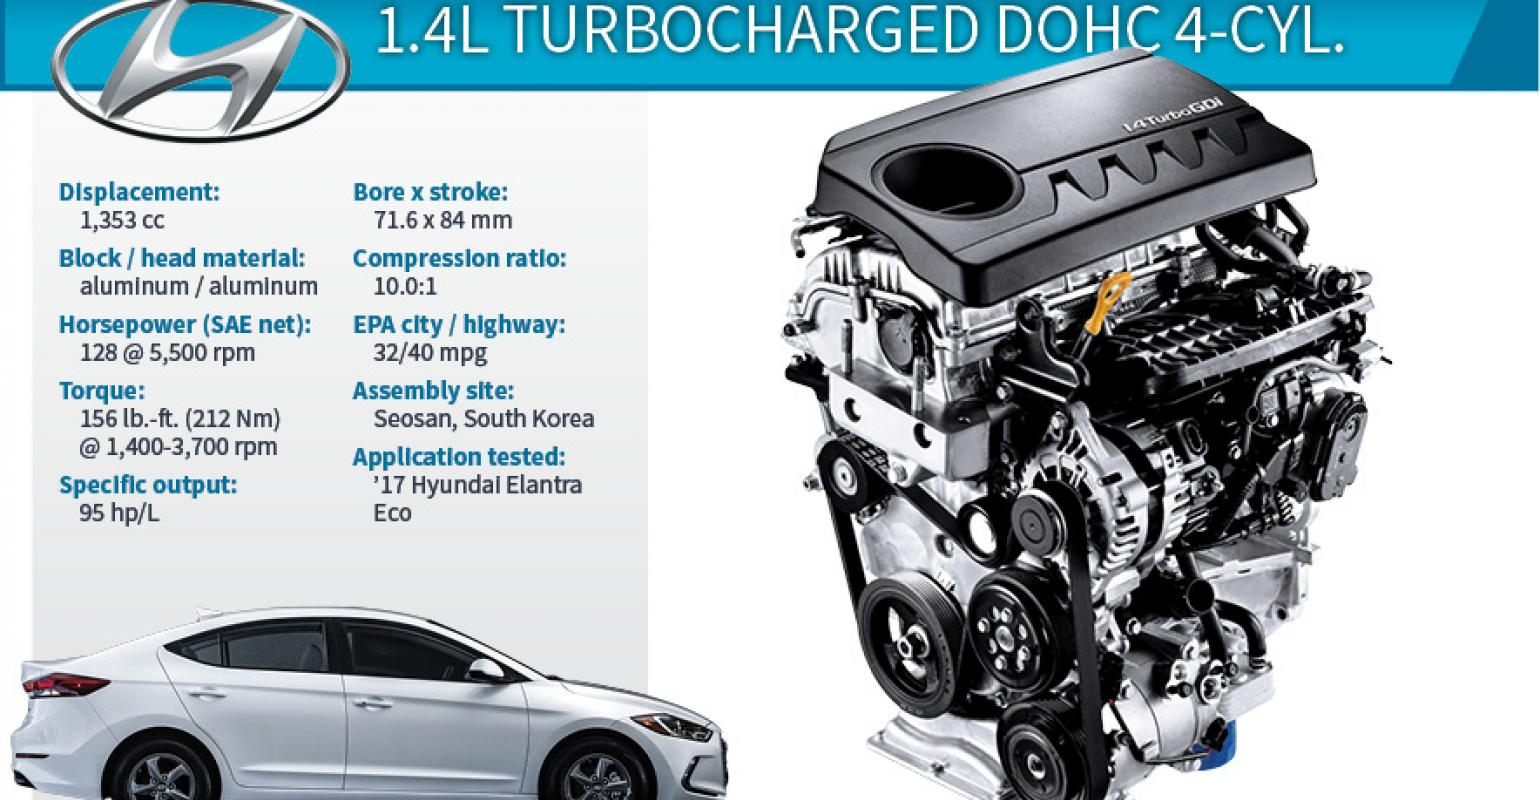 2017 Wards 10 Best Engines Winner: Hyundai Elantra Eco 1 4L Turbo-4